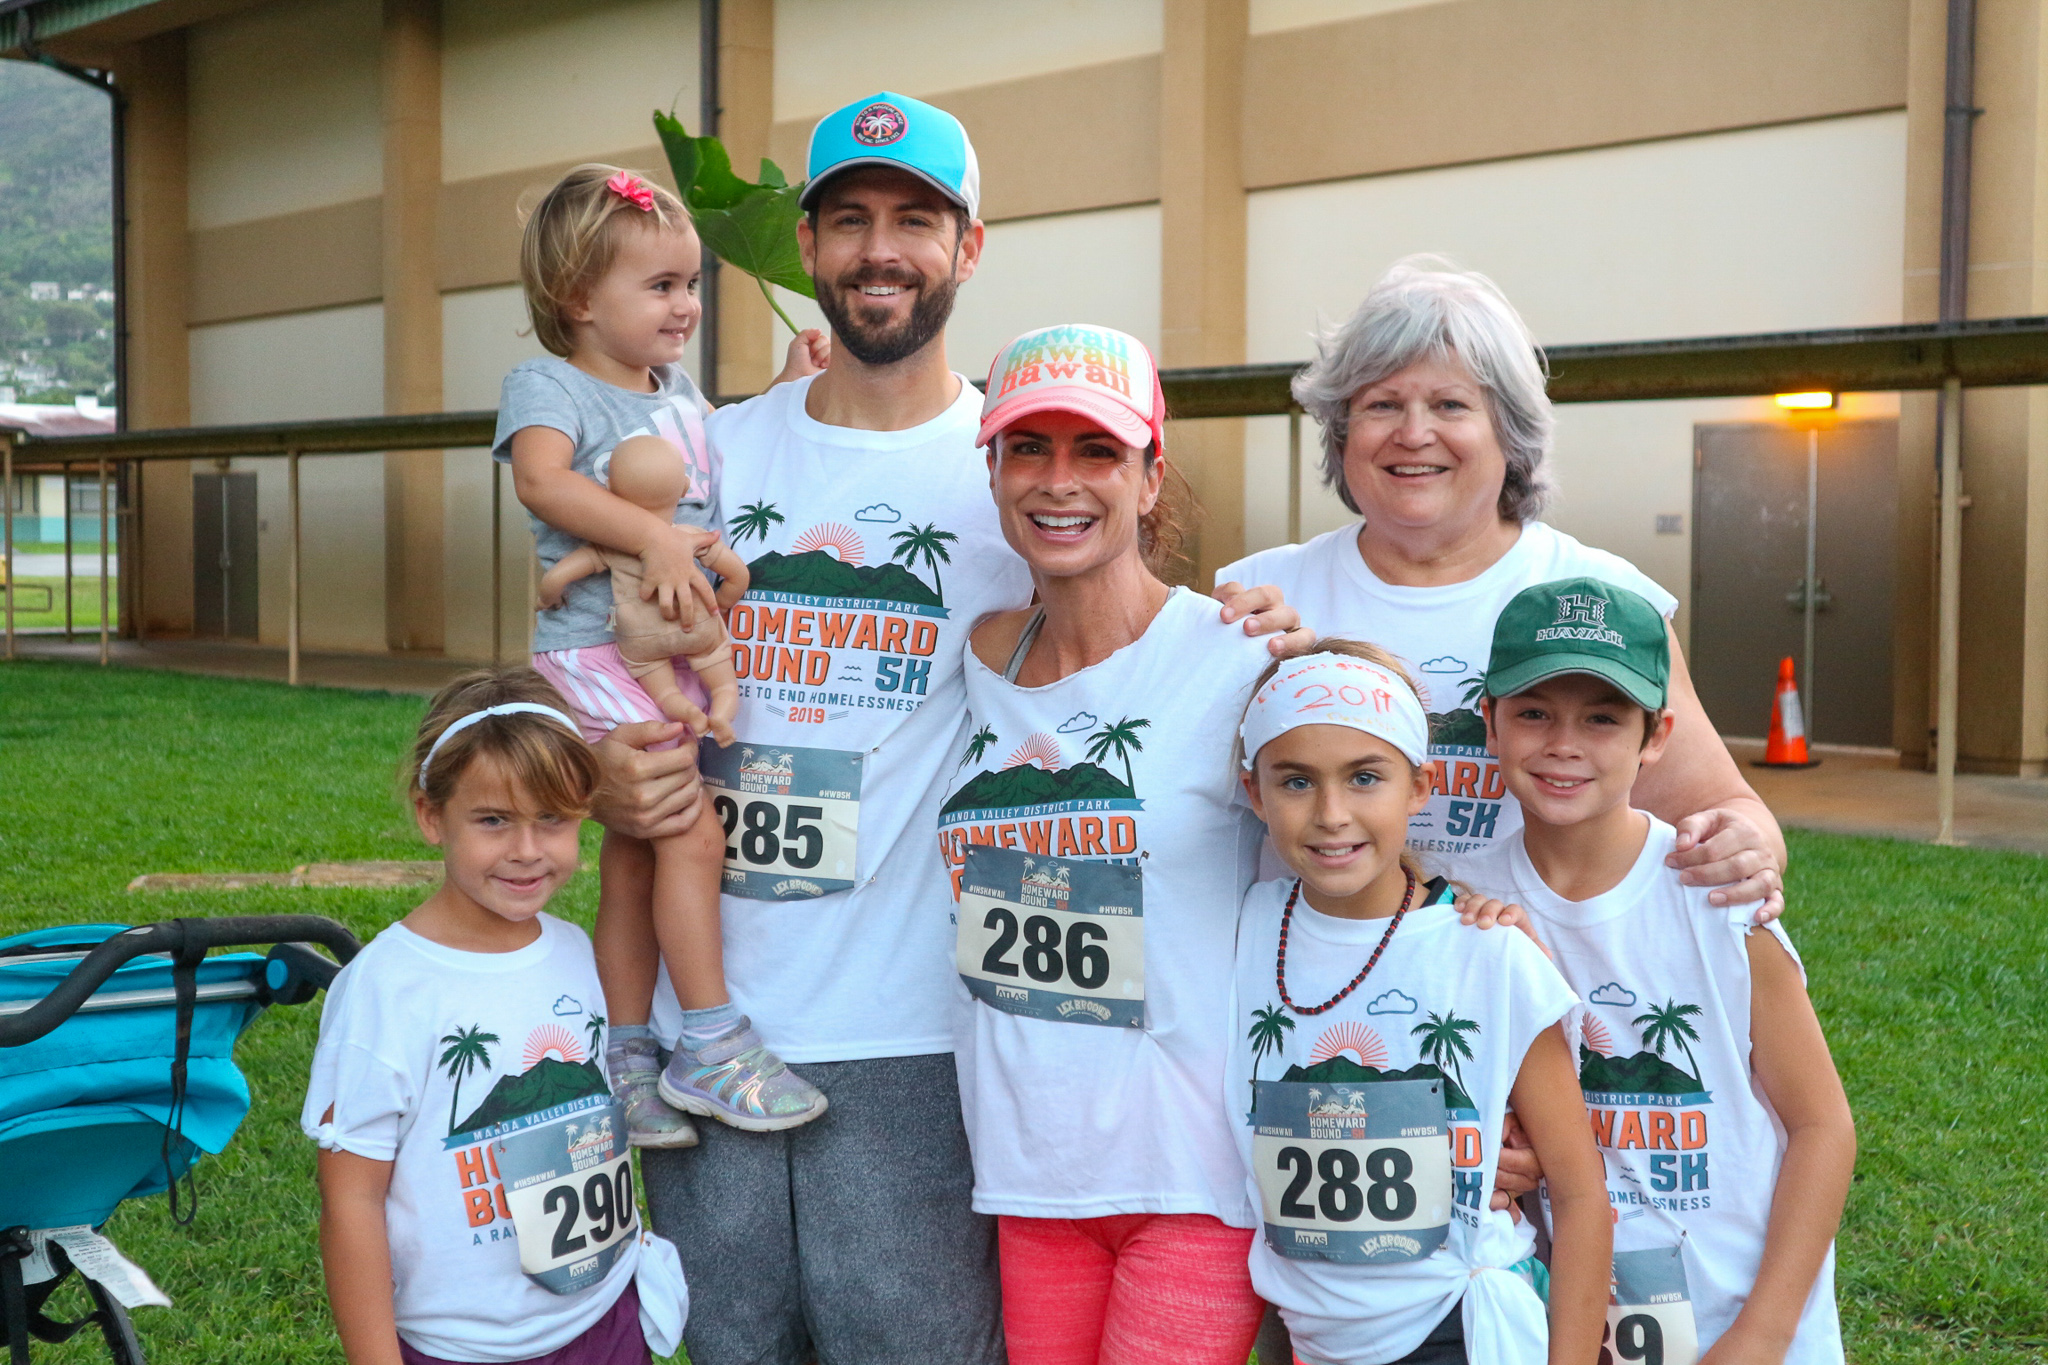 Homeward Bound 5K is perfect for all ages. From keiki (children) to kupuna (seniors), everyone can run, walk to jog at their own pace and help end homelessness in Hawaii.